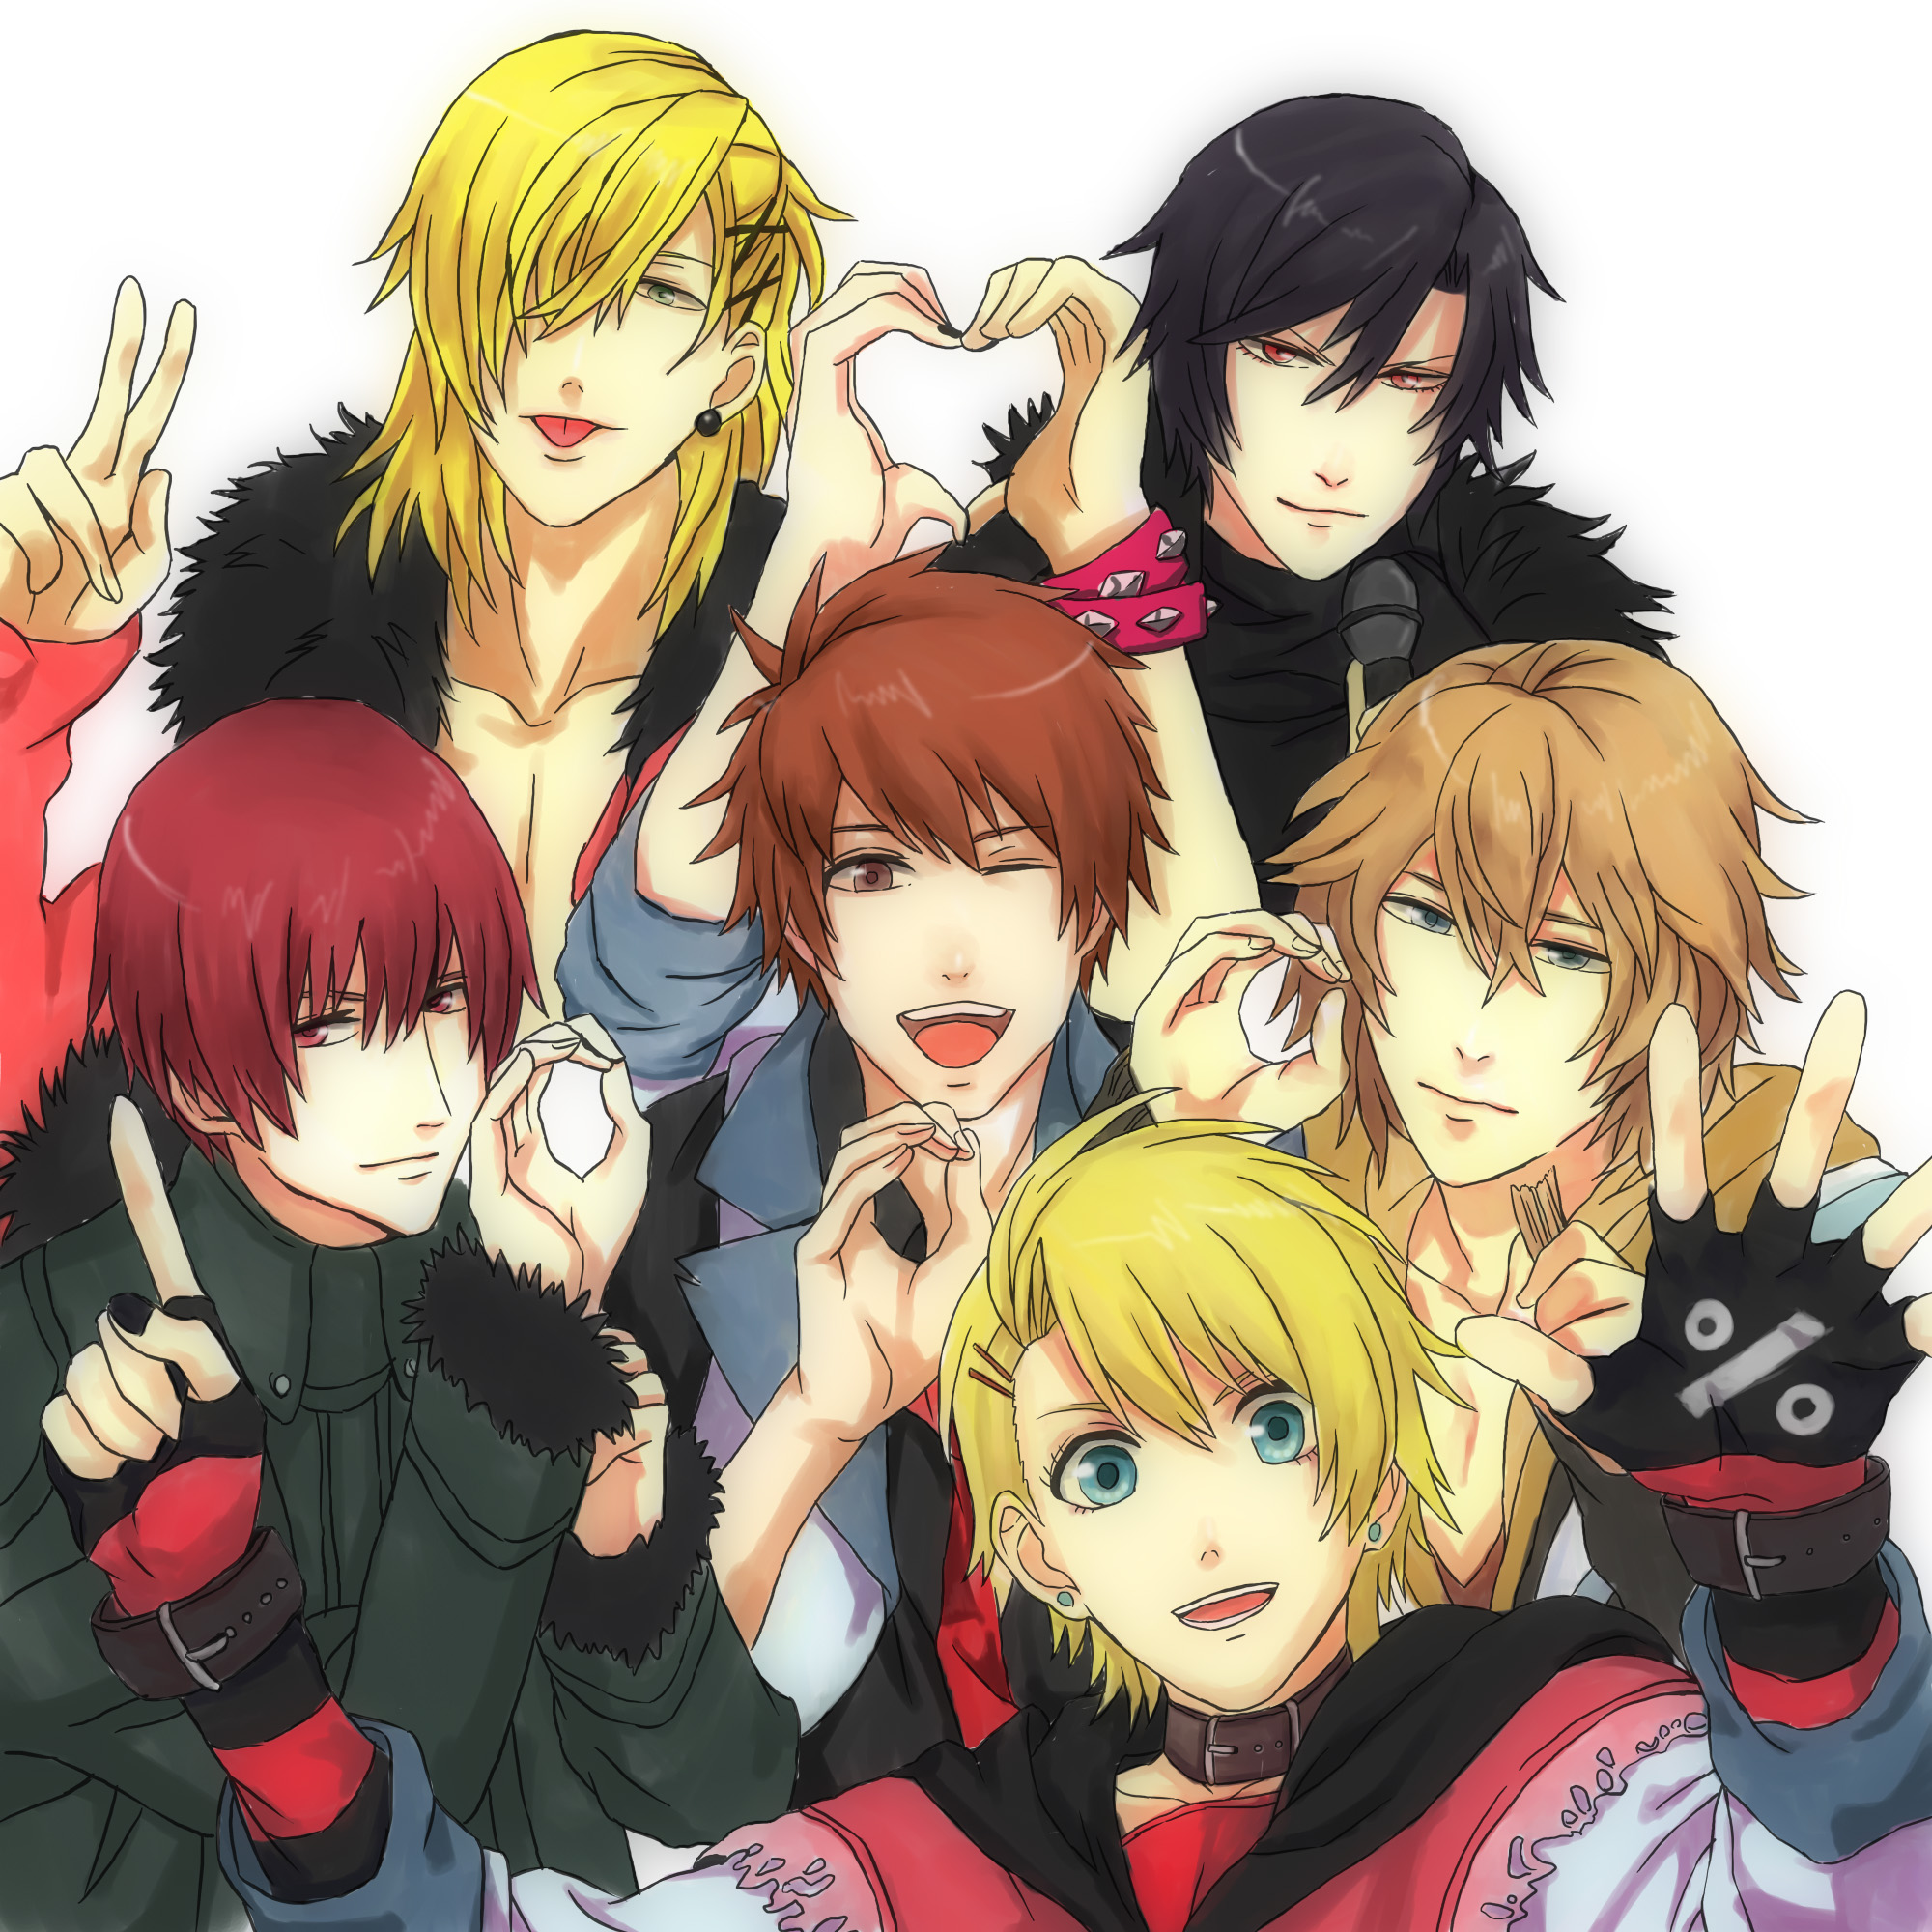 Anime Characters Named Akira : Togainu no chi blood of the reprimanded dog image